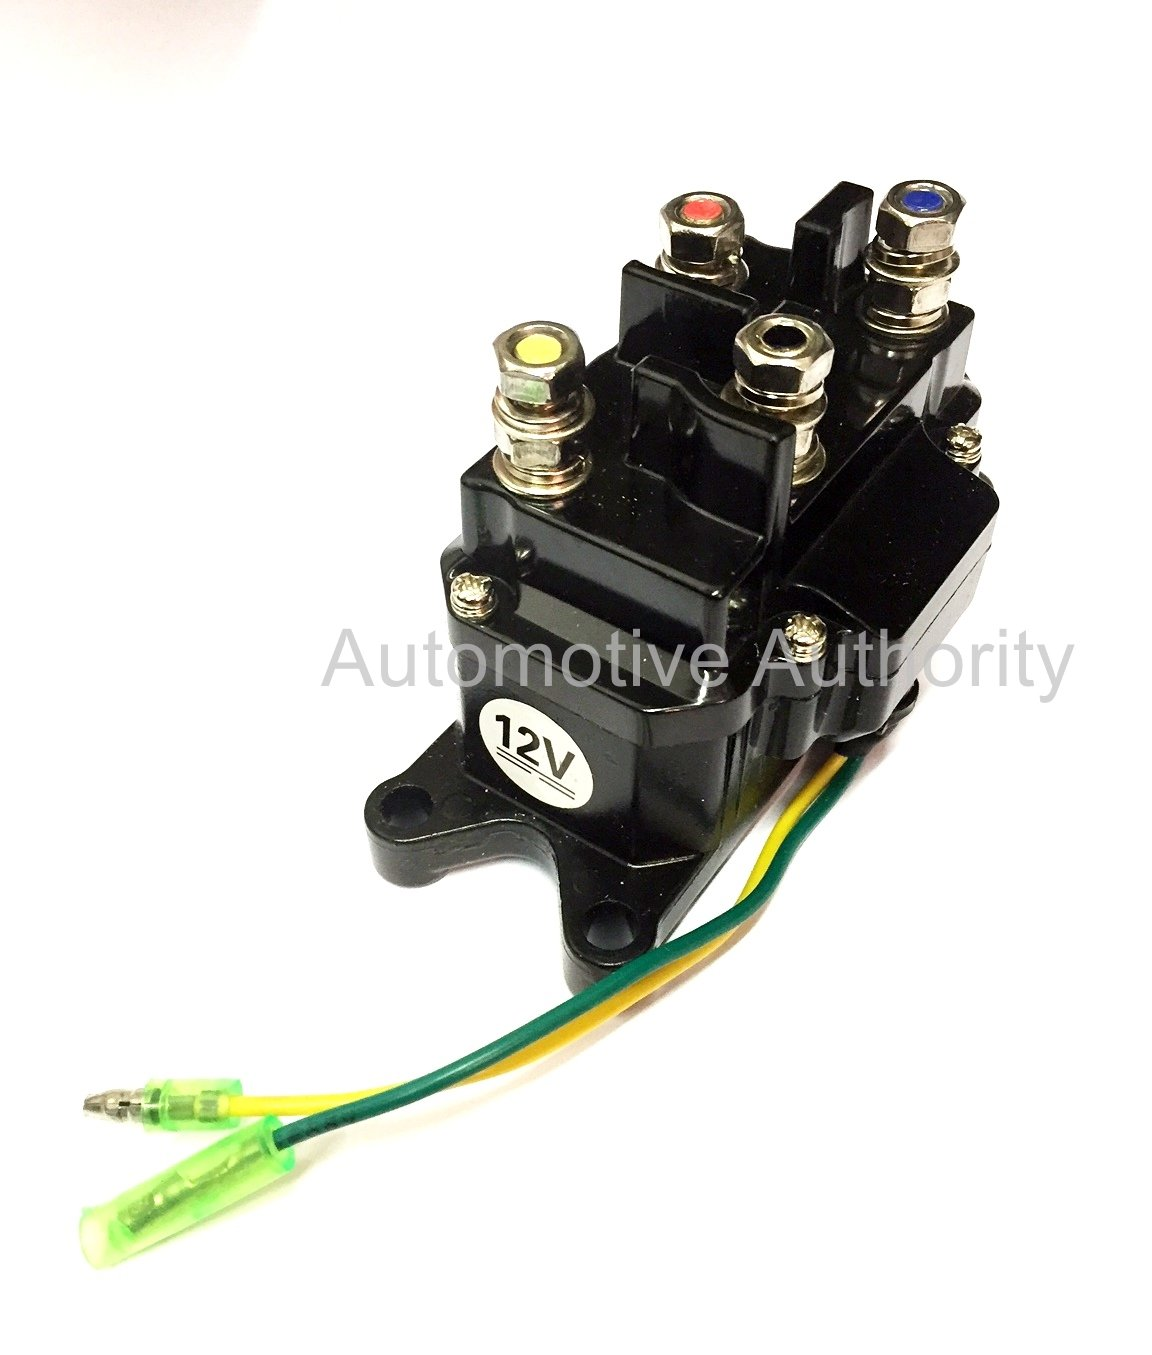 12V Solenoid Relay Contactor Winch Rocker Switch Thumb Truck ATV UTV Universal Automotive Authority 4332987781